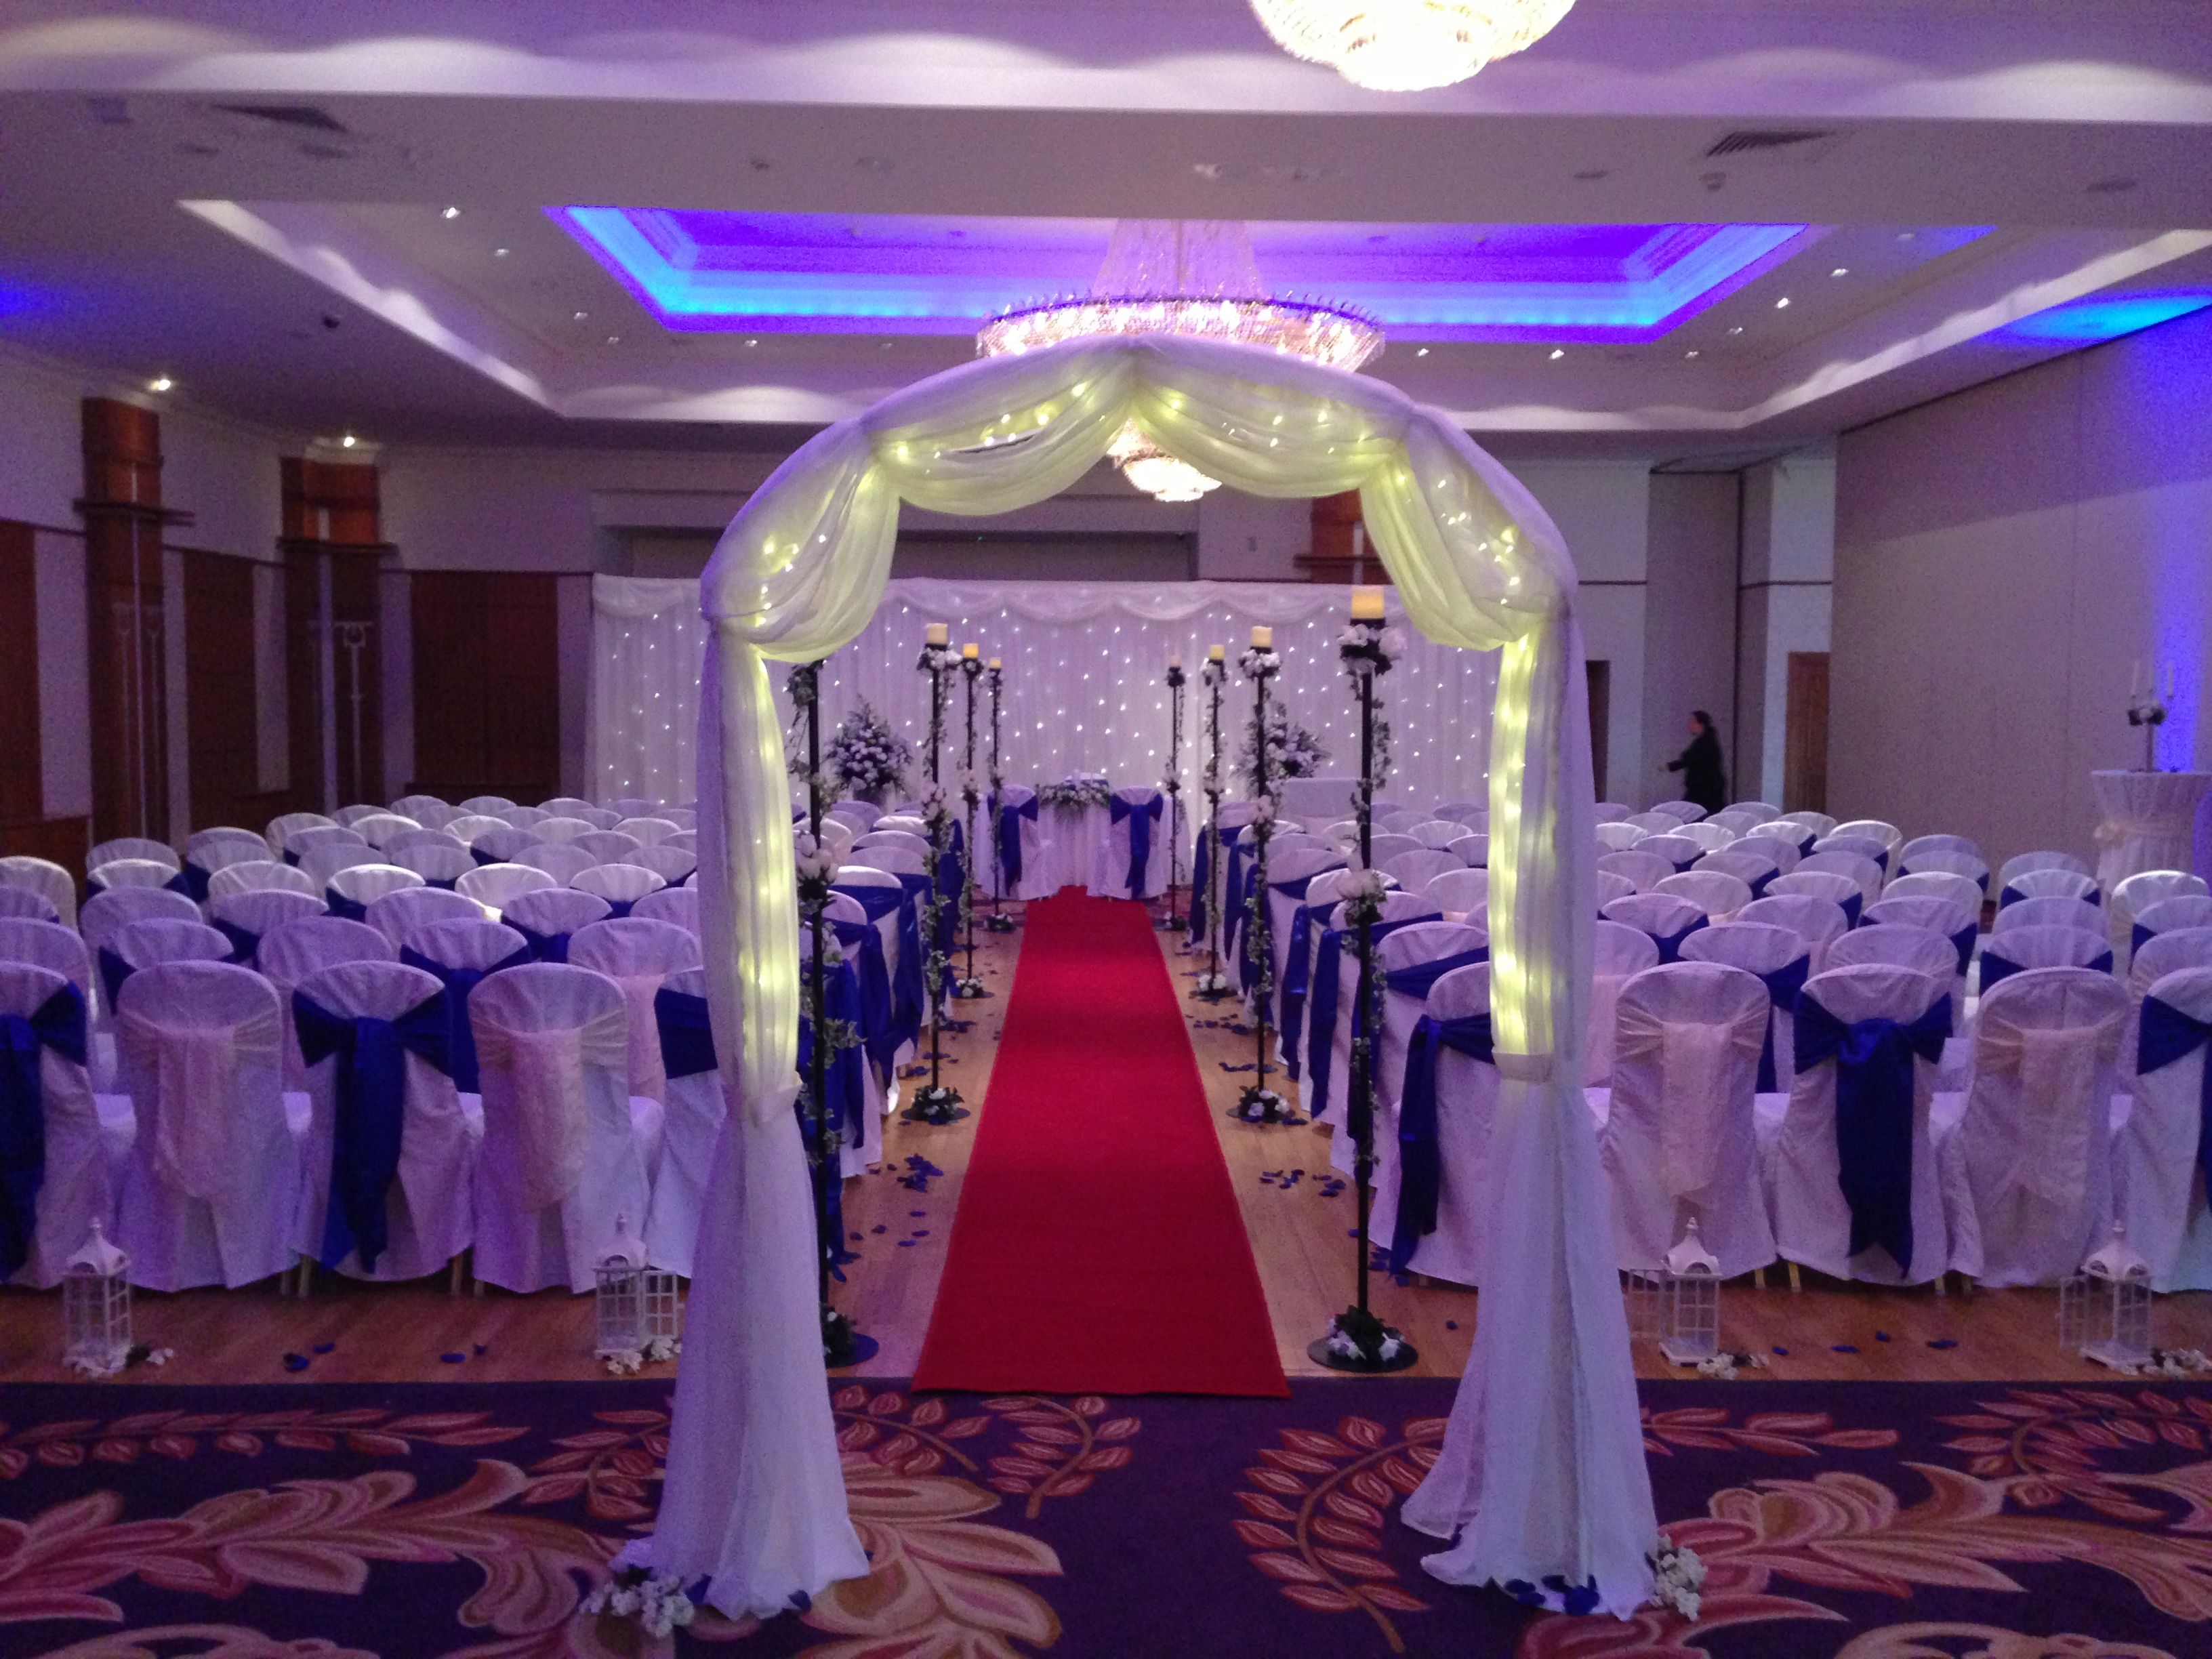 Civil Wedding Decoration Ideas: Civil Ceremonies In Hotels Are A Great Idea, But They Need